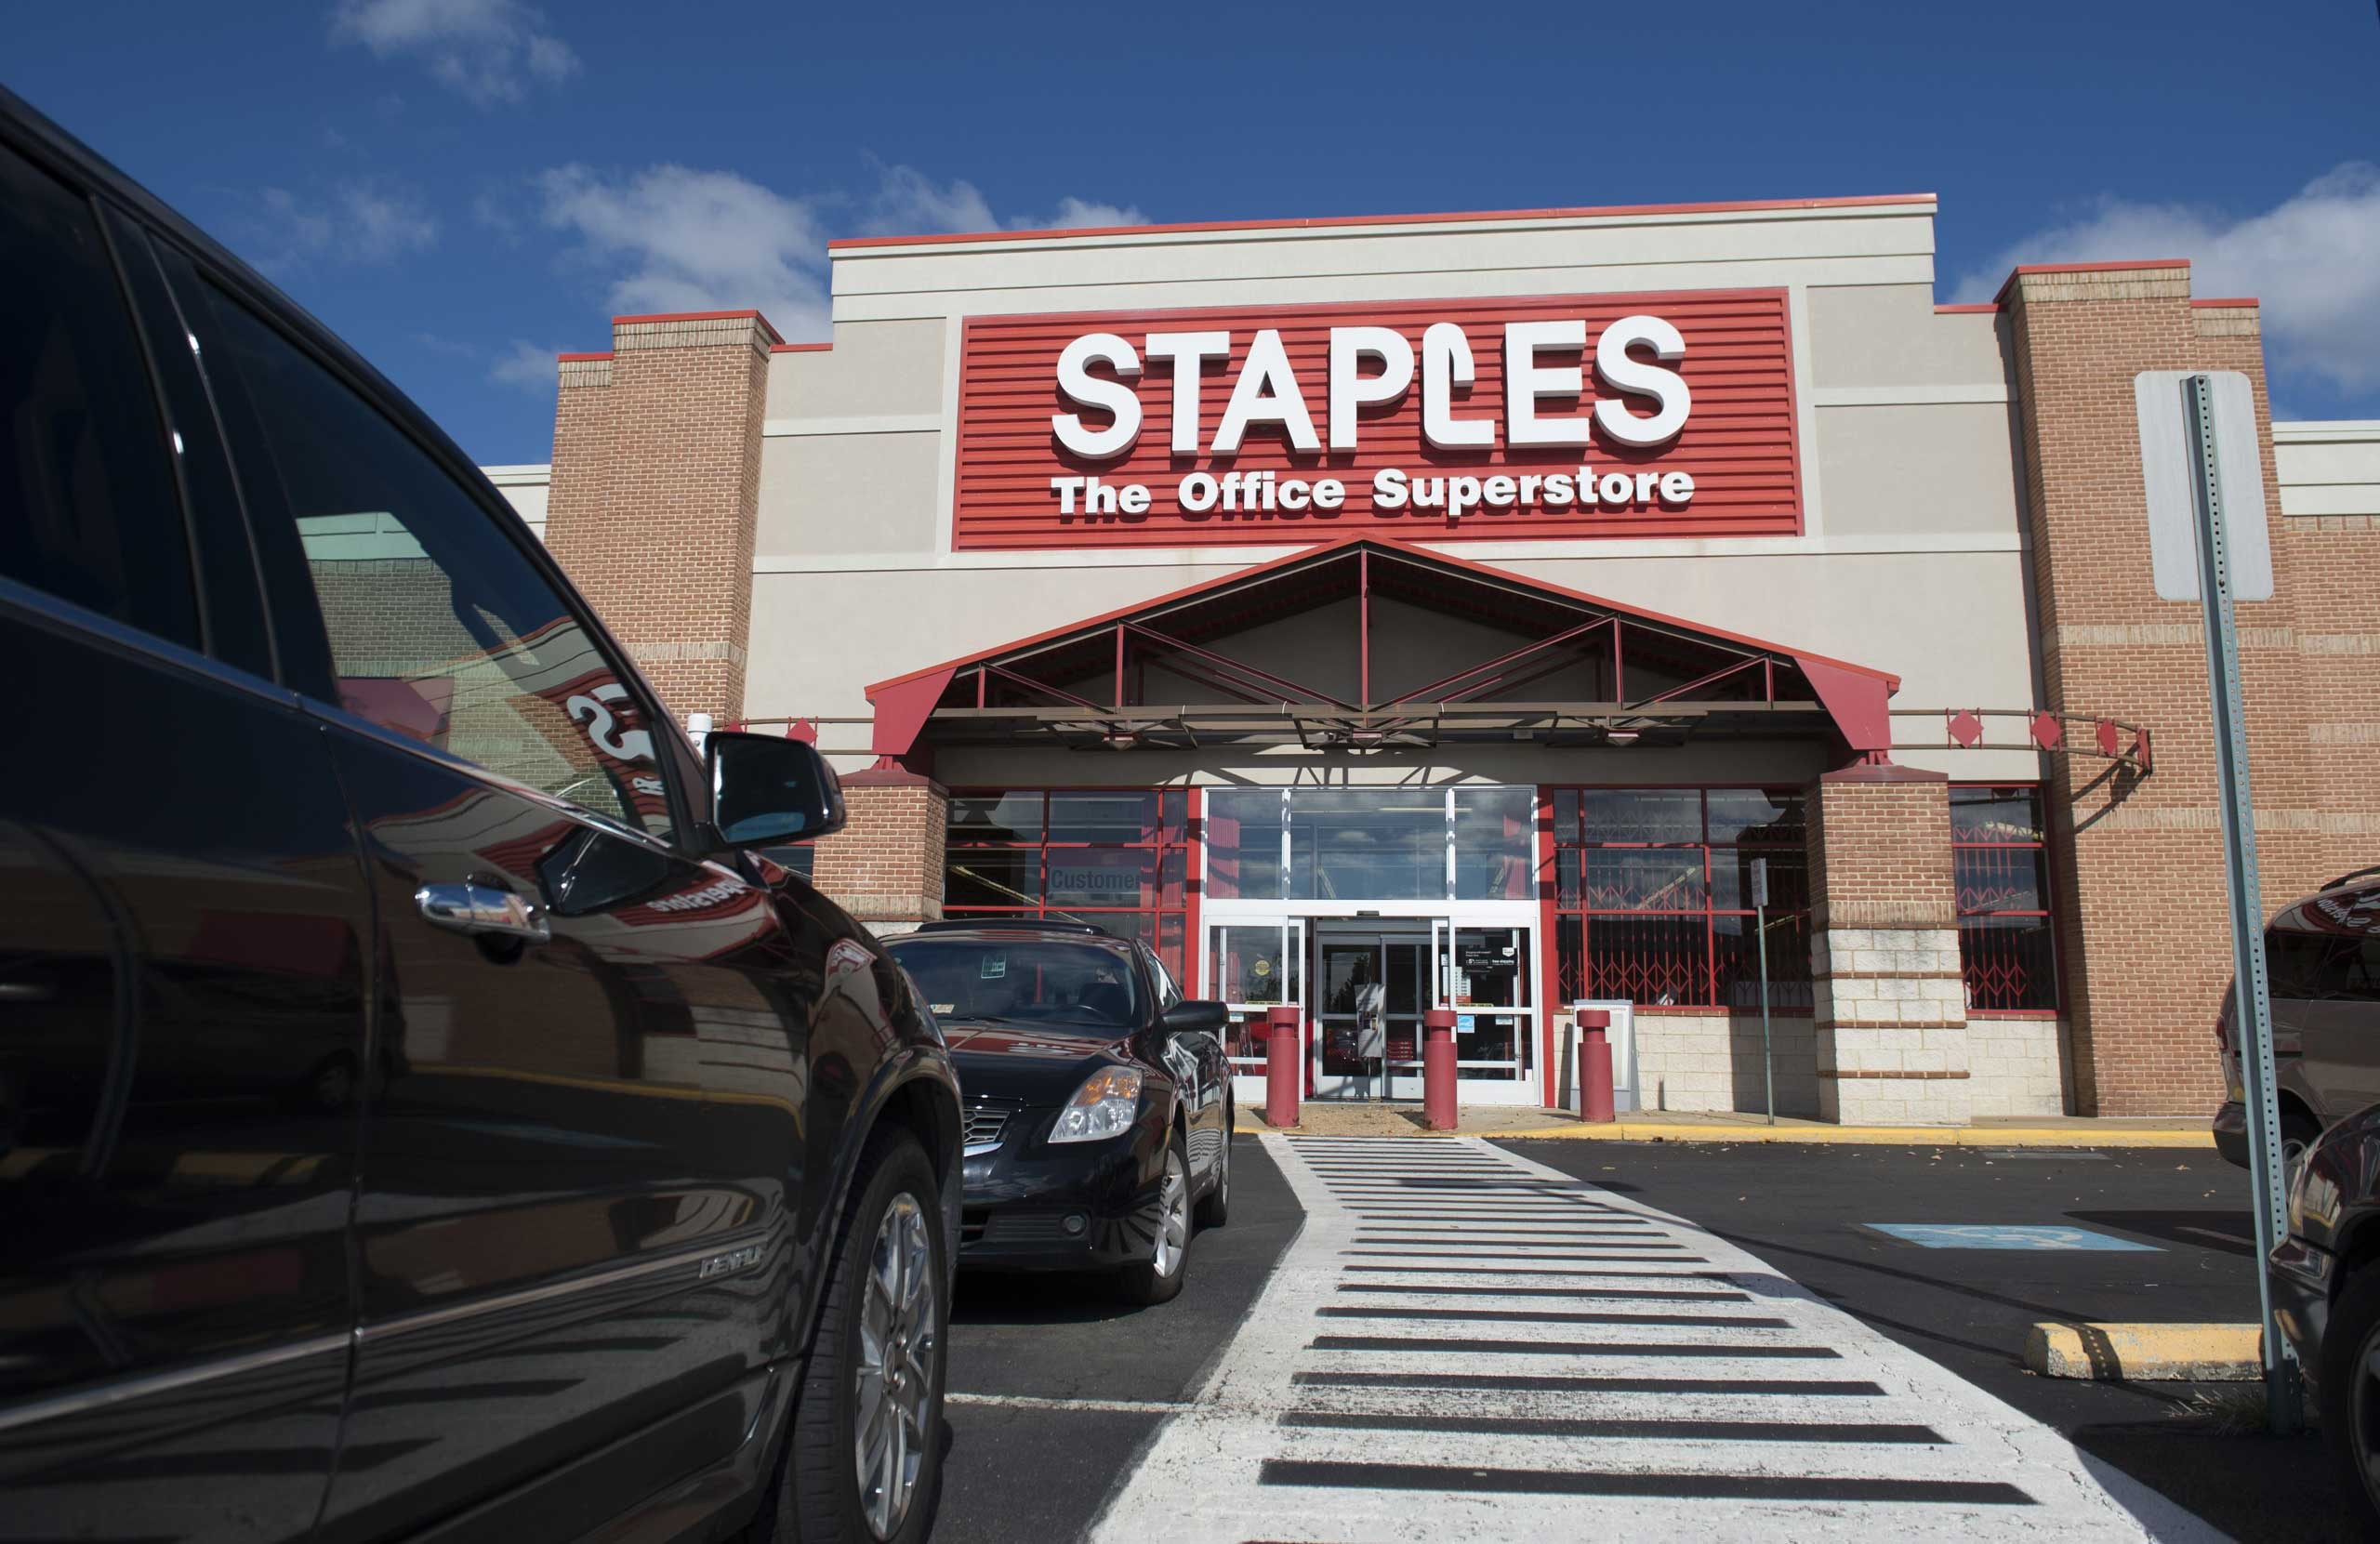 A Staples office supply store is seen in Springfield, Virginia, Oct. 23, 2014.